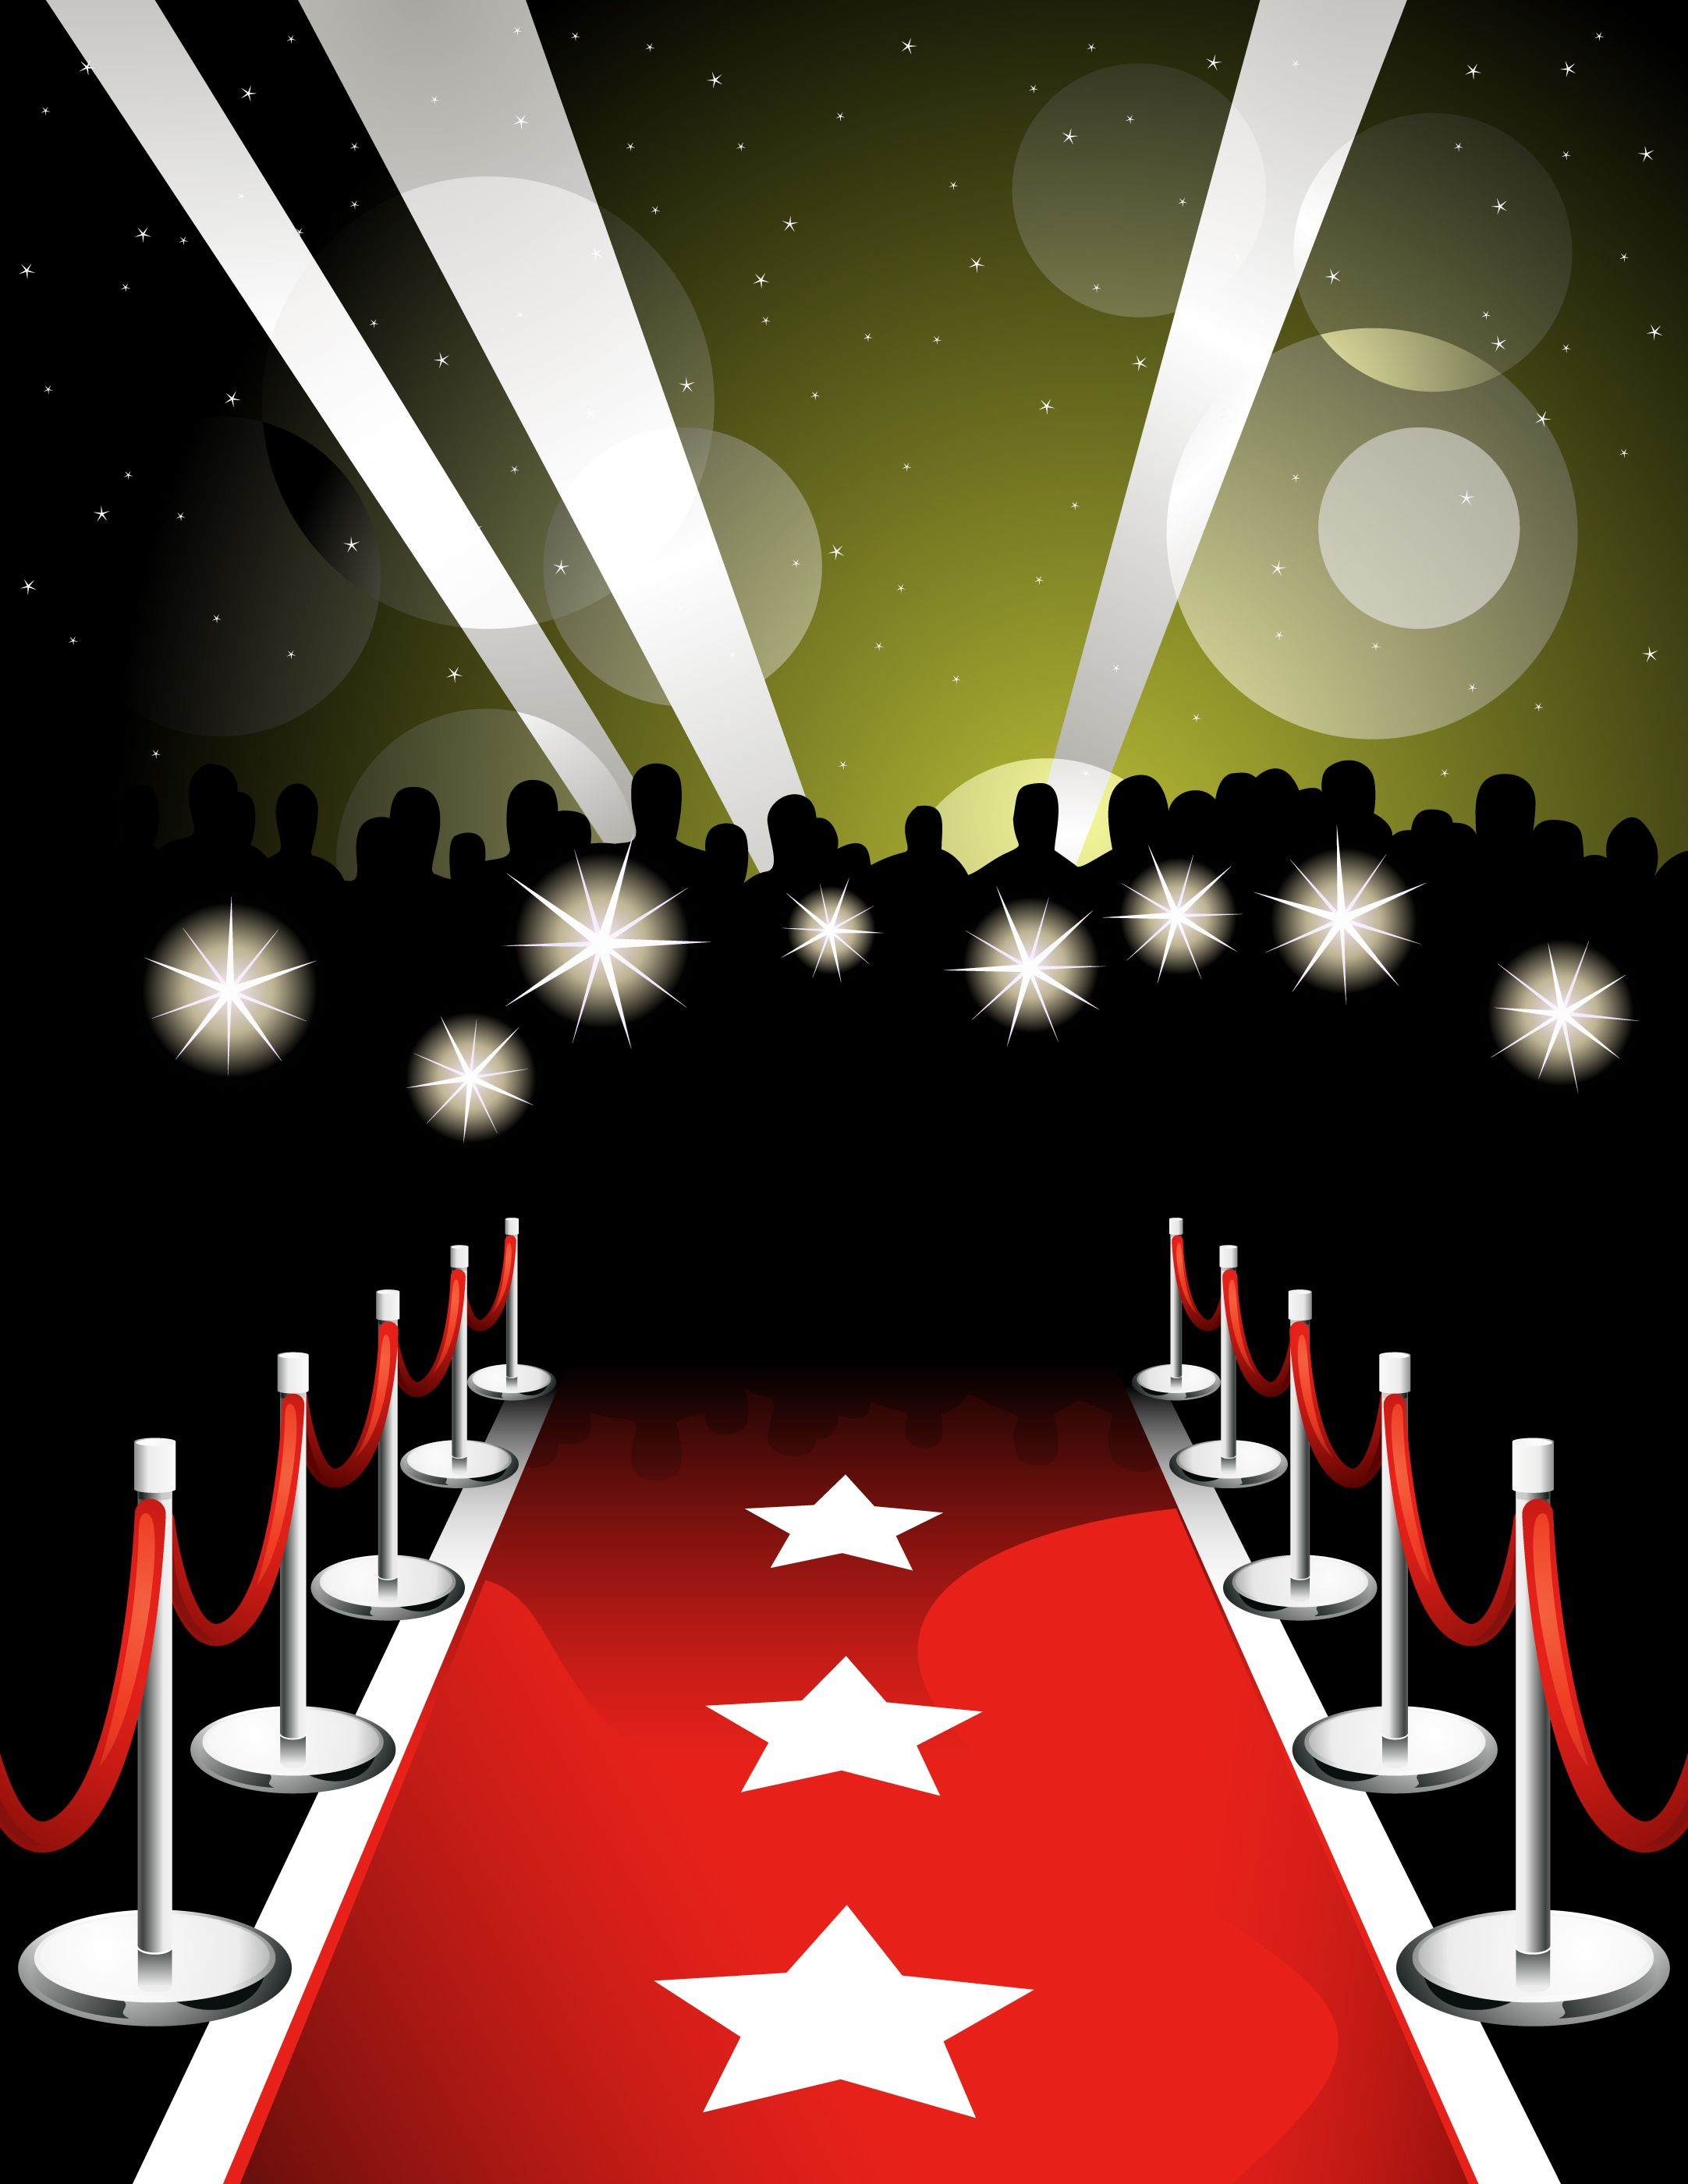 Reinaade Red Carpet Backdrop Red Carpet Party Event Backdrop